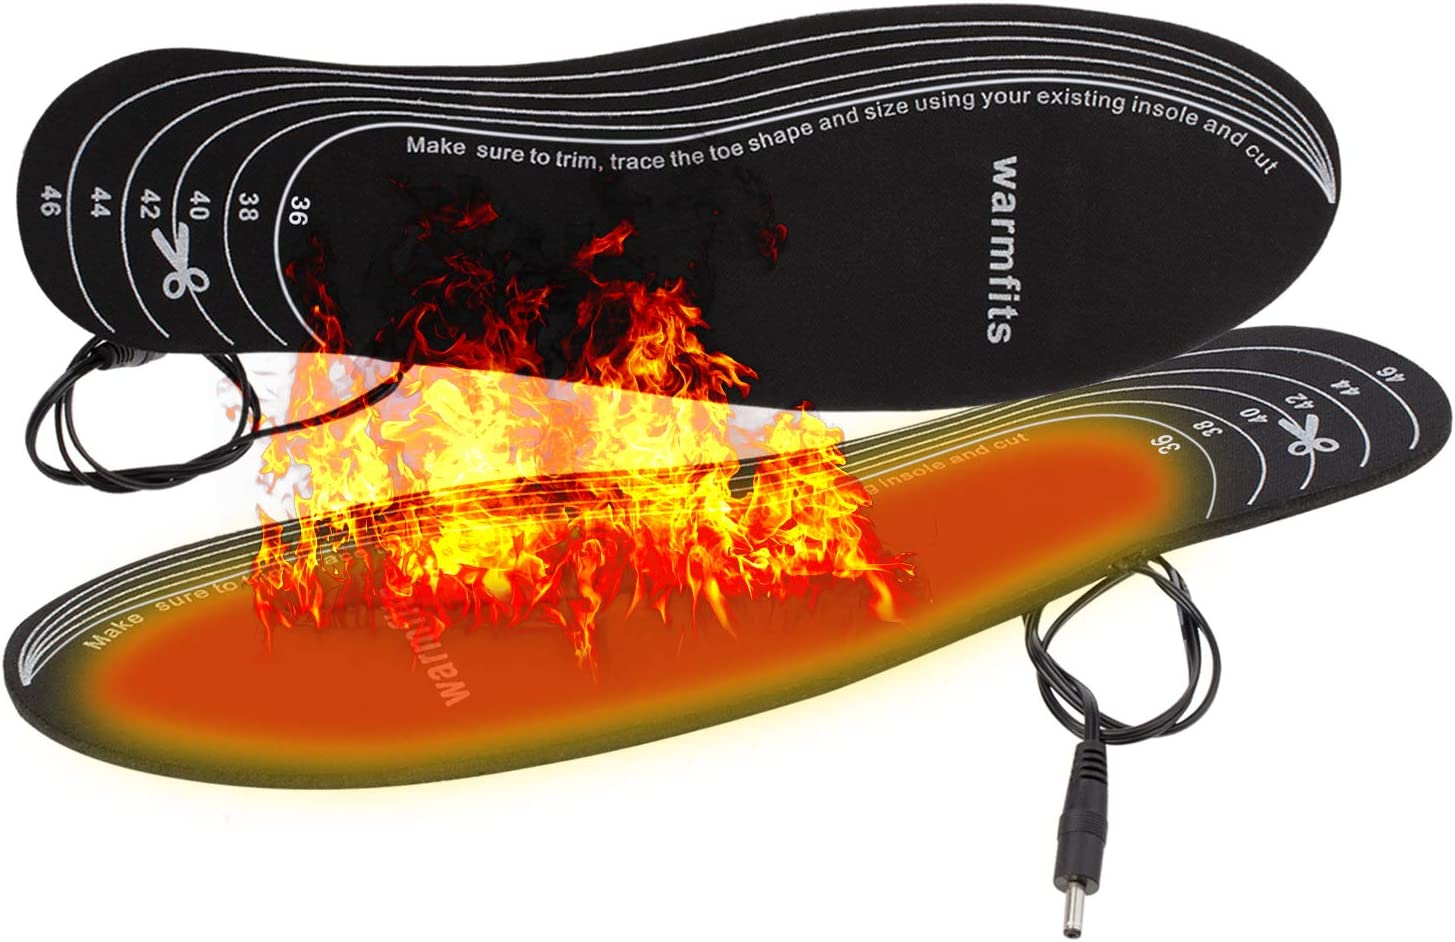 Warmfits Rechargeable Heated Insole